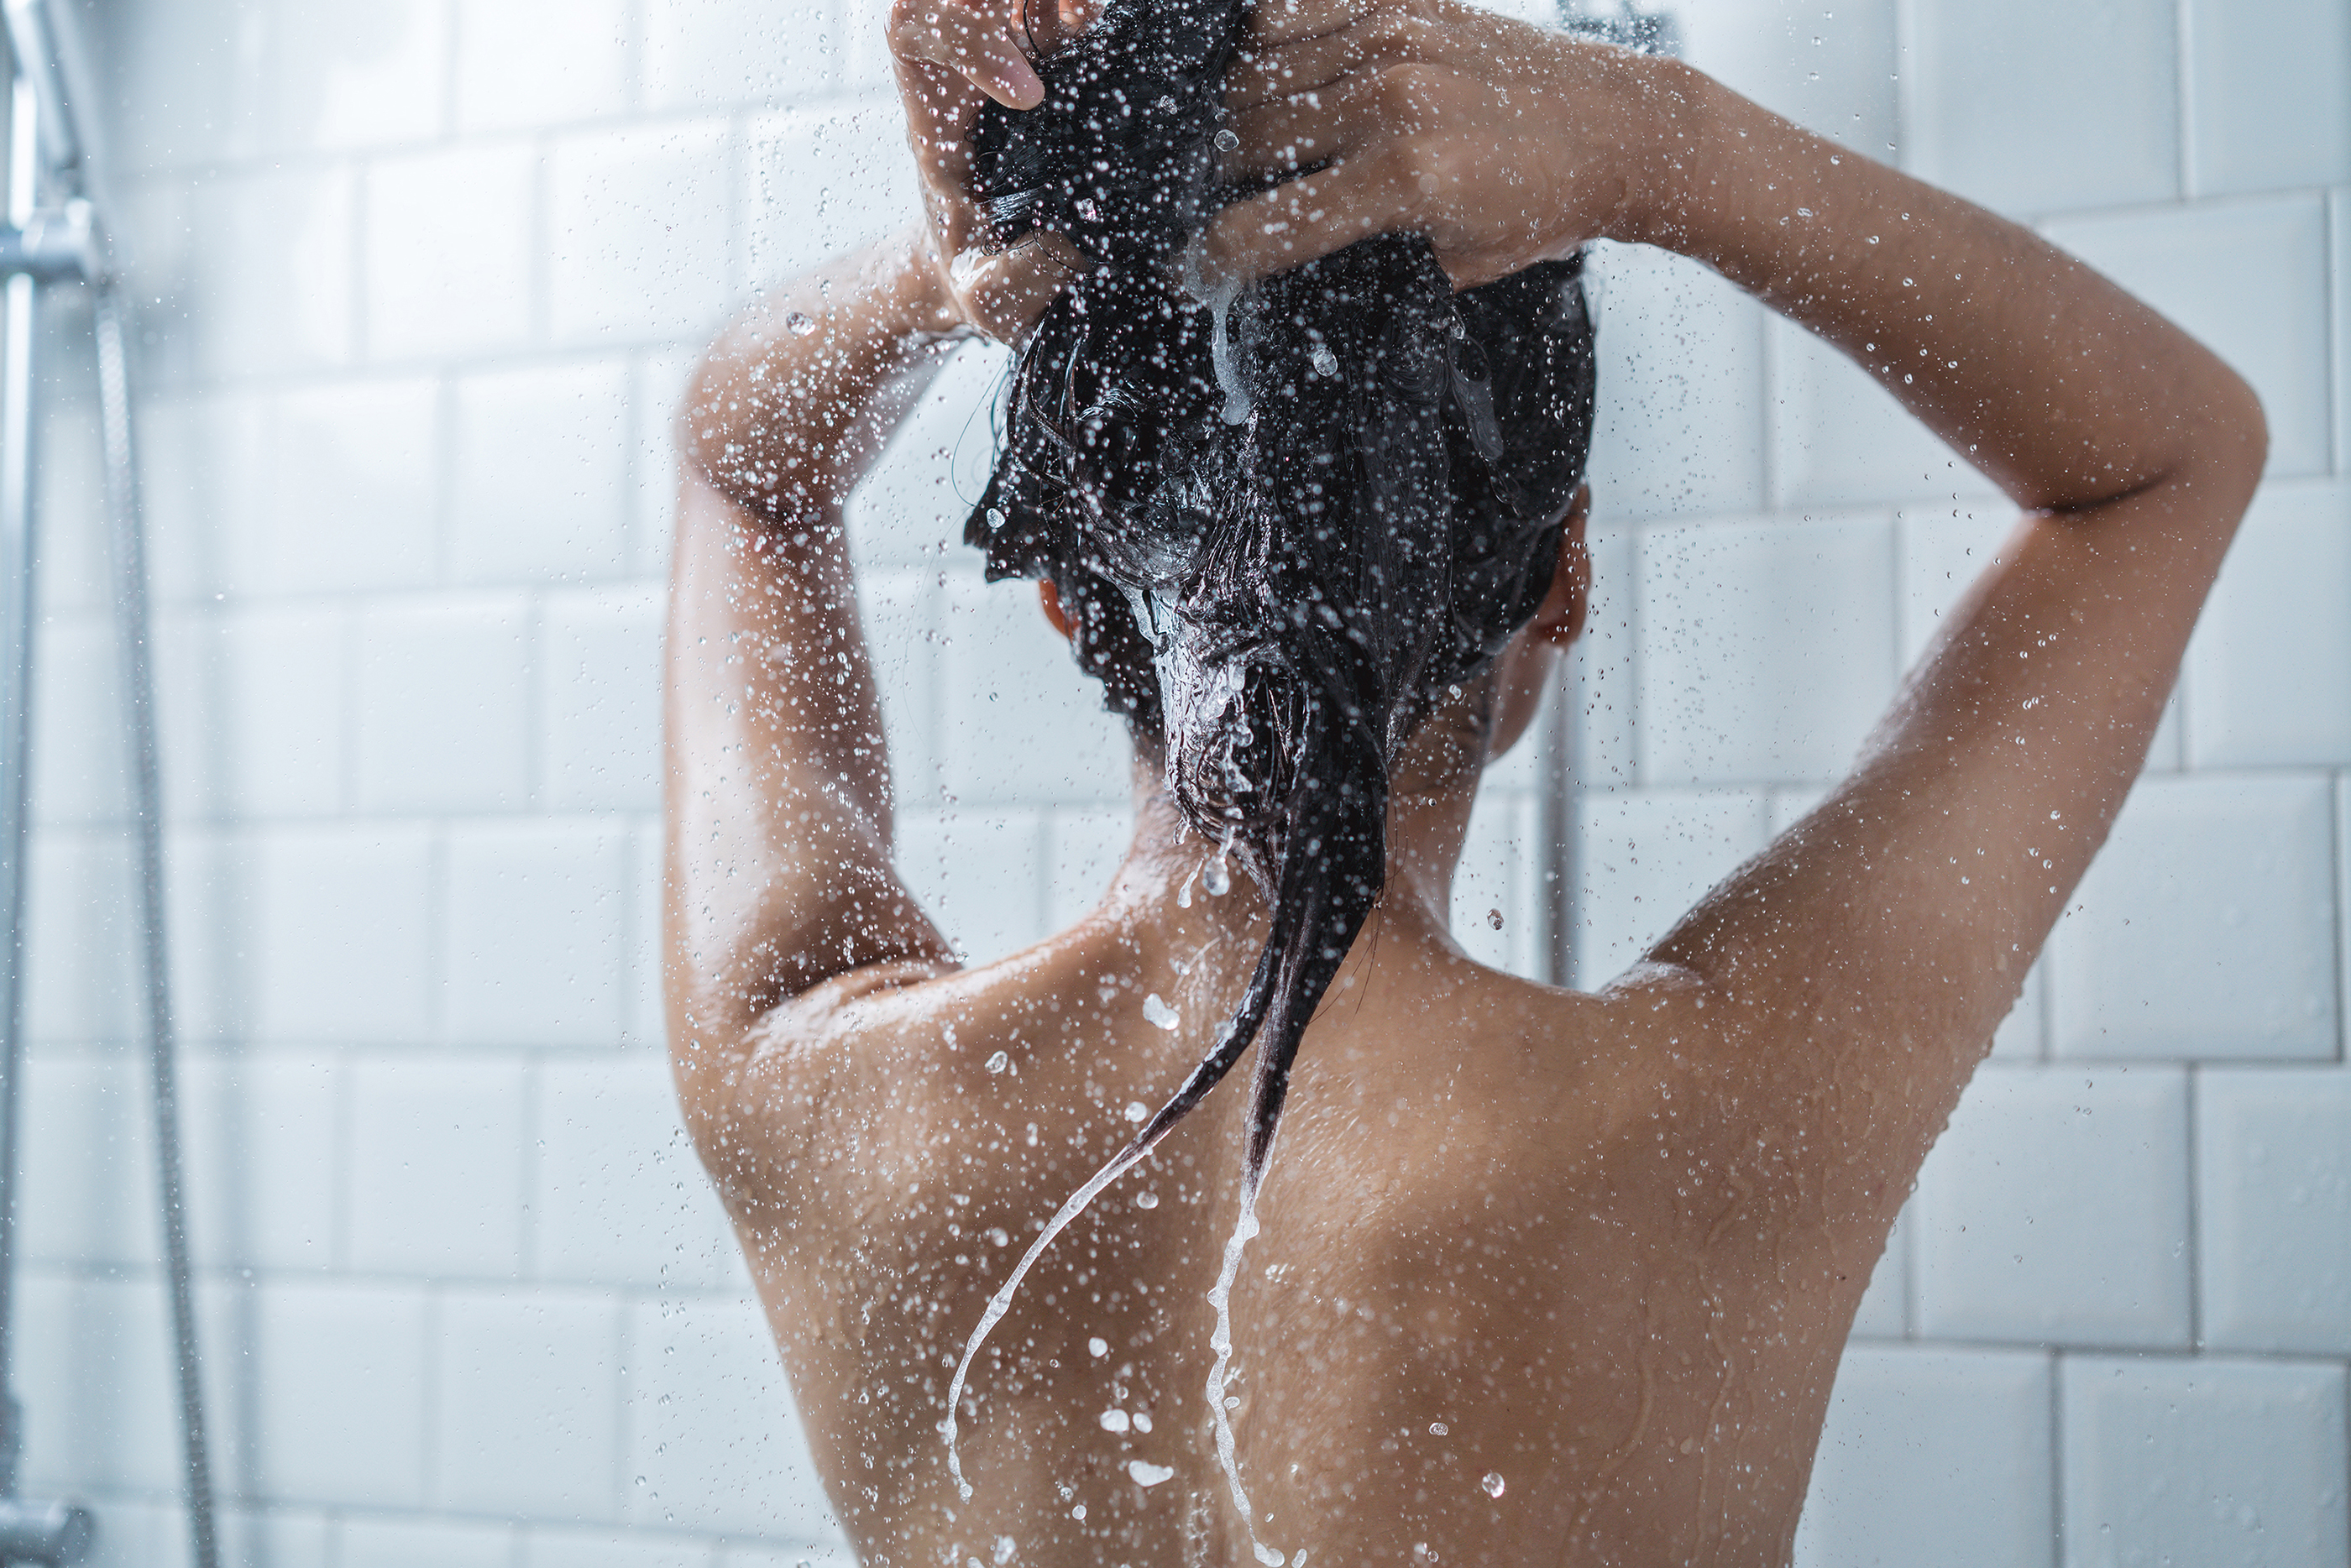 Woman Washing Hair, Body in the SHower